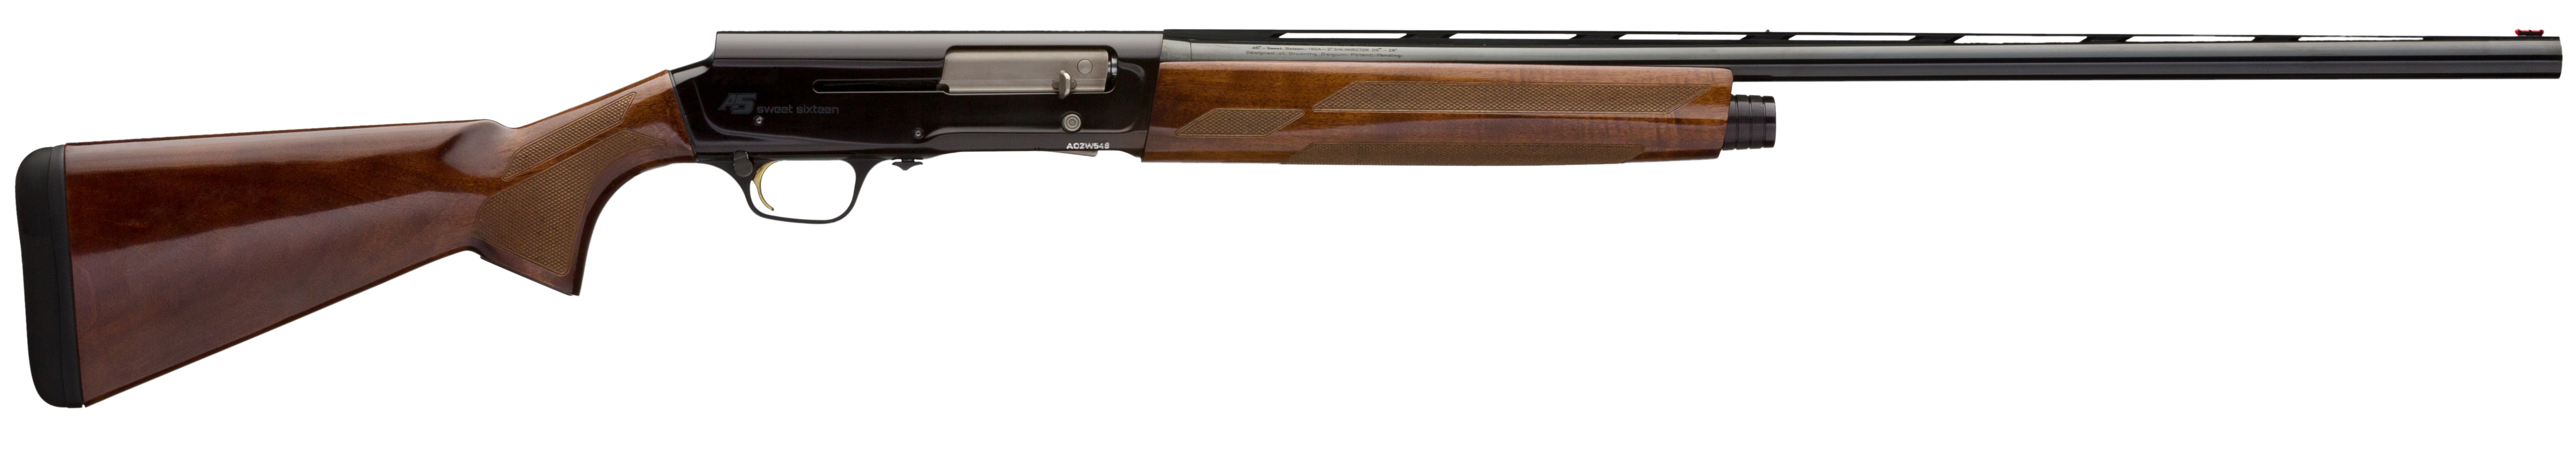 Browning A5 Sweet Sixteen Semi-Auto Shotgun 2.75'' 16 Gauge 28'' Black Aluminum Alloy - Walnut High Gloss